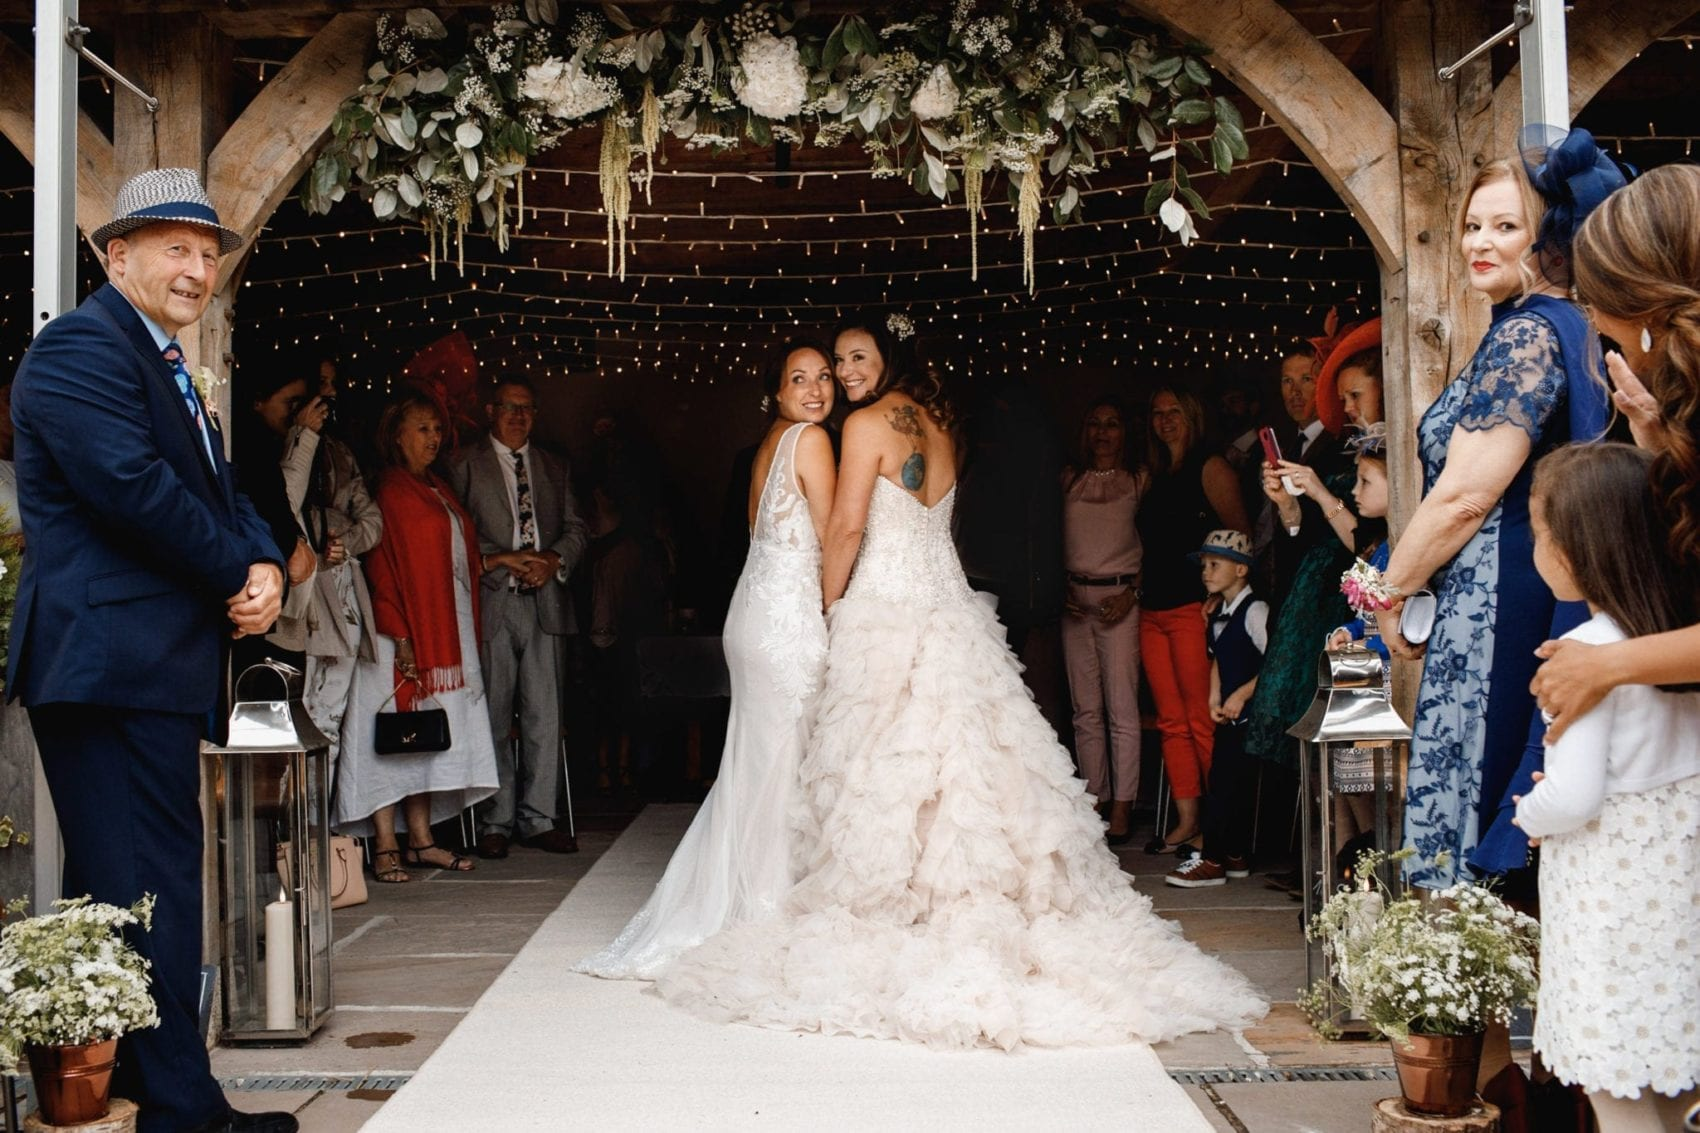 Two brides walking down the isle